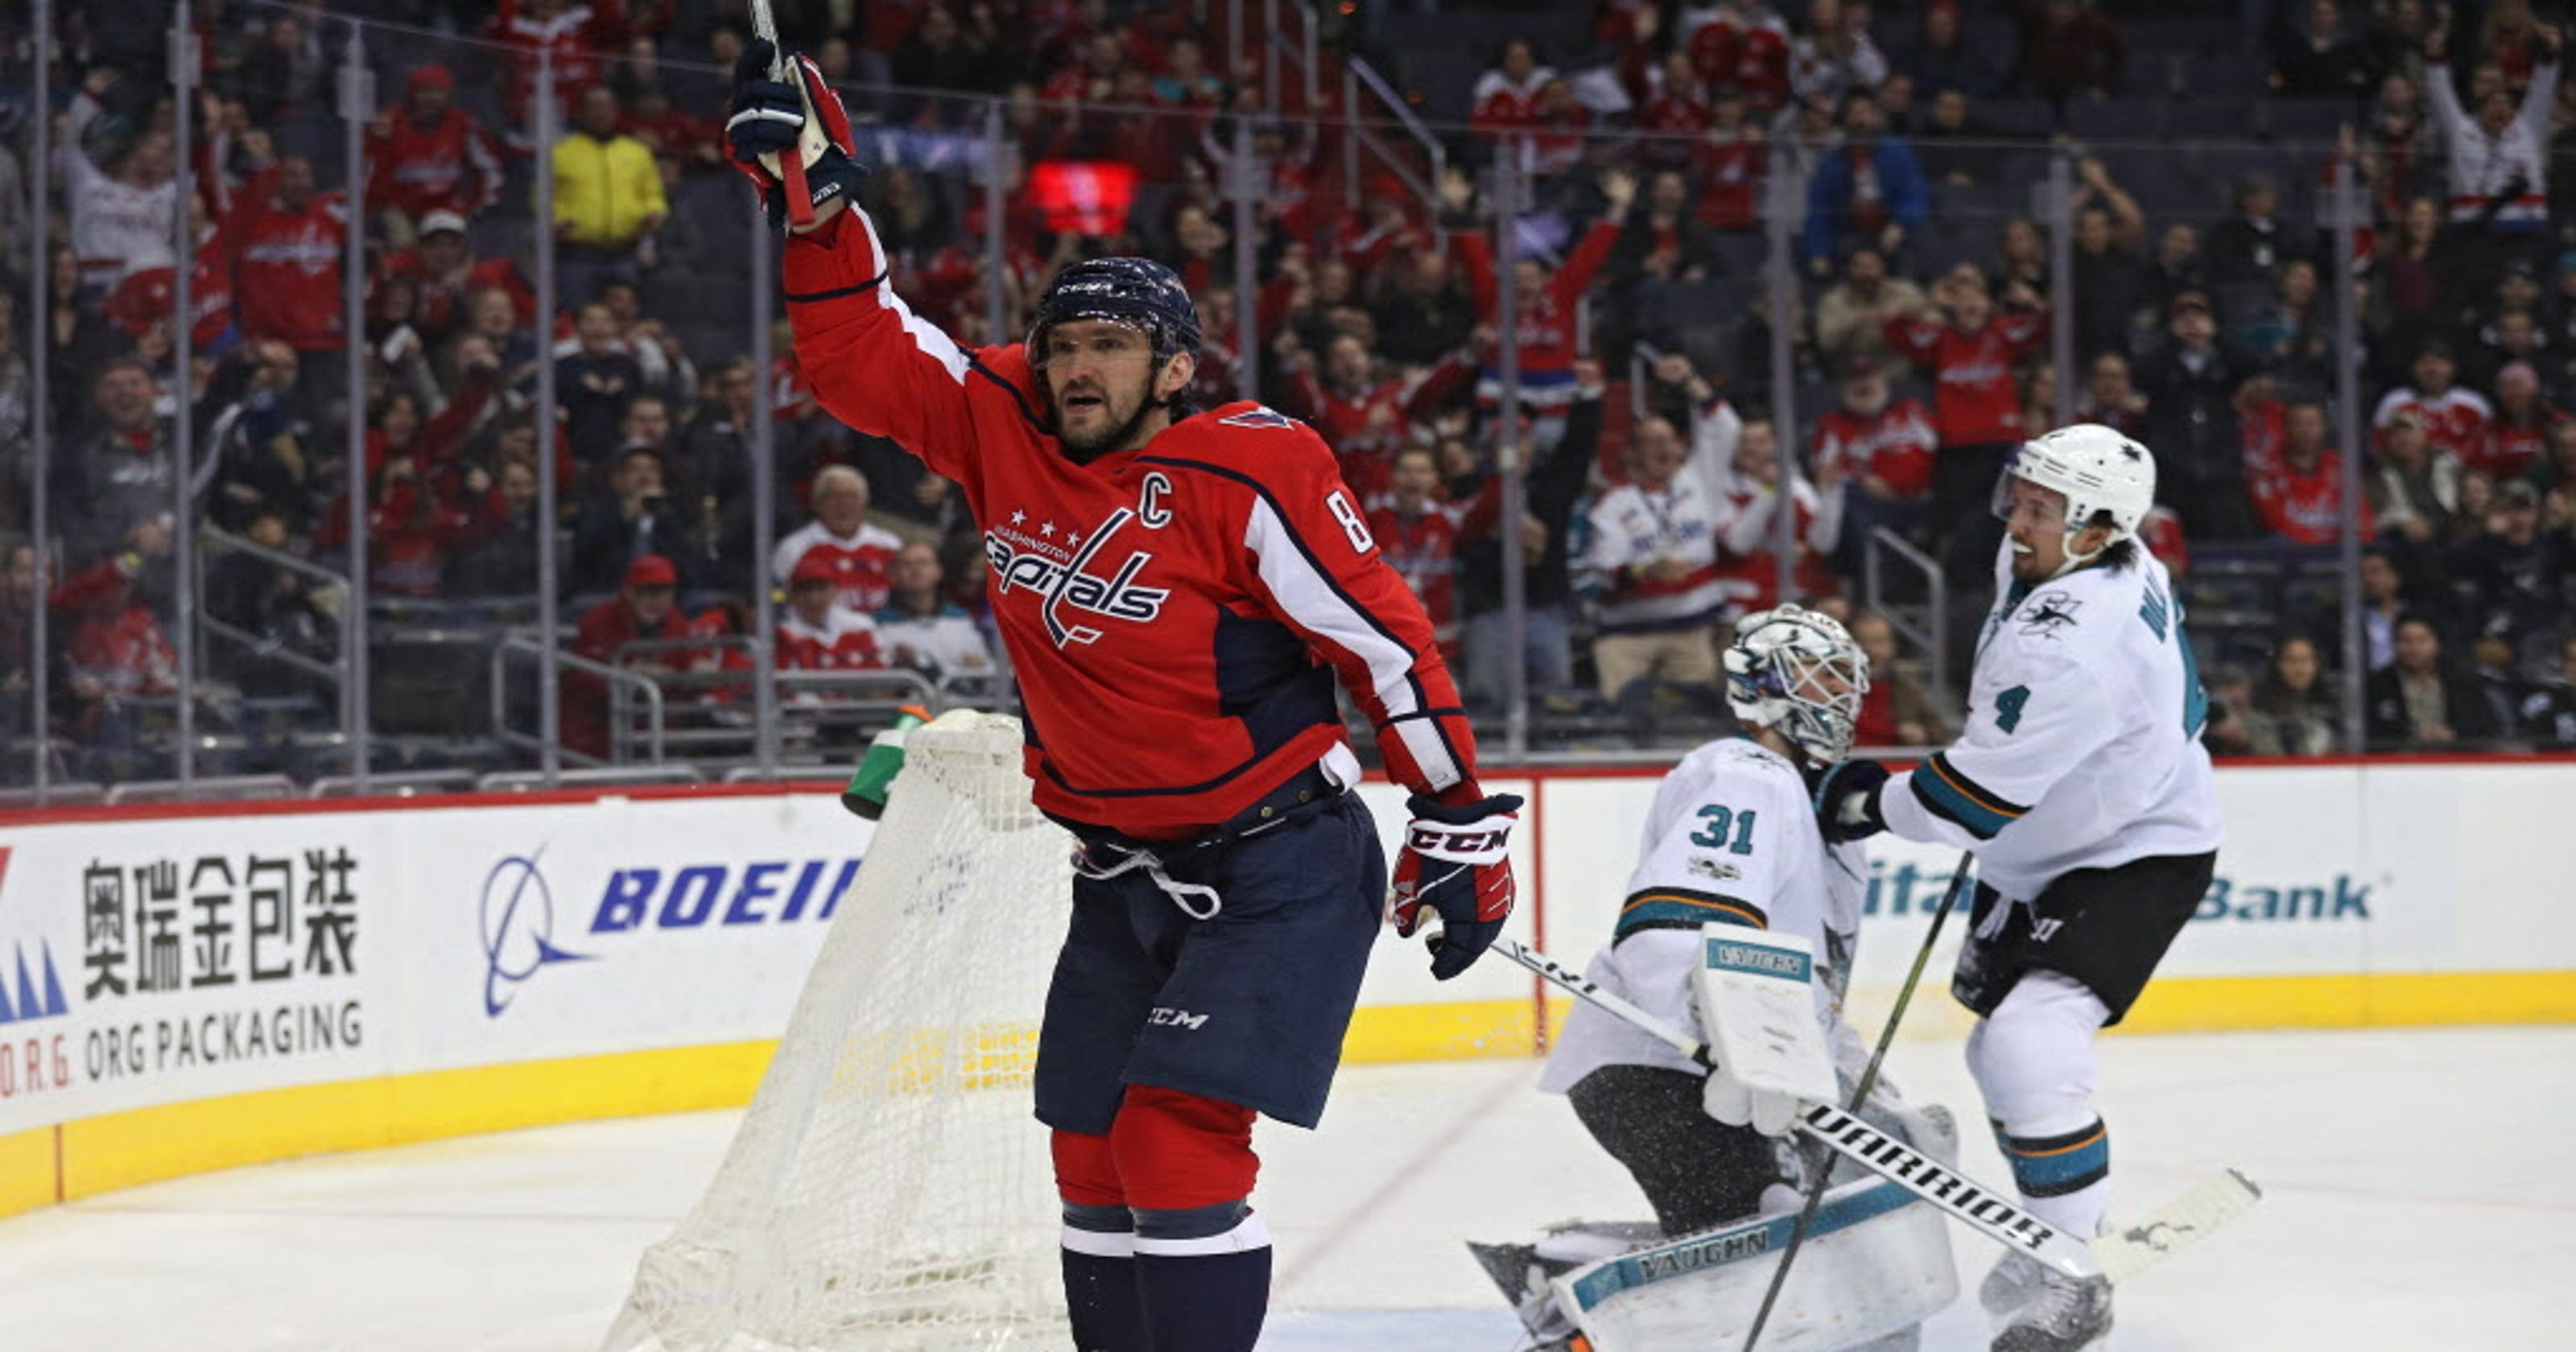 Alex Ovechkin moves to 20th on all-time goal list in Capitals win 6e0ddedfd89b